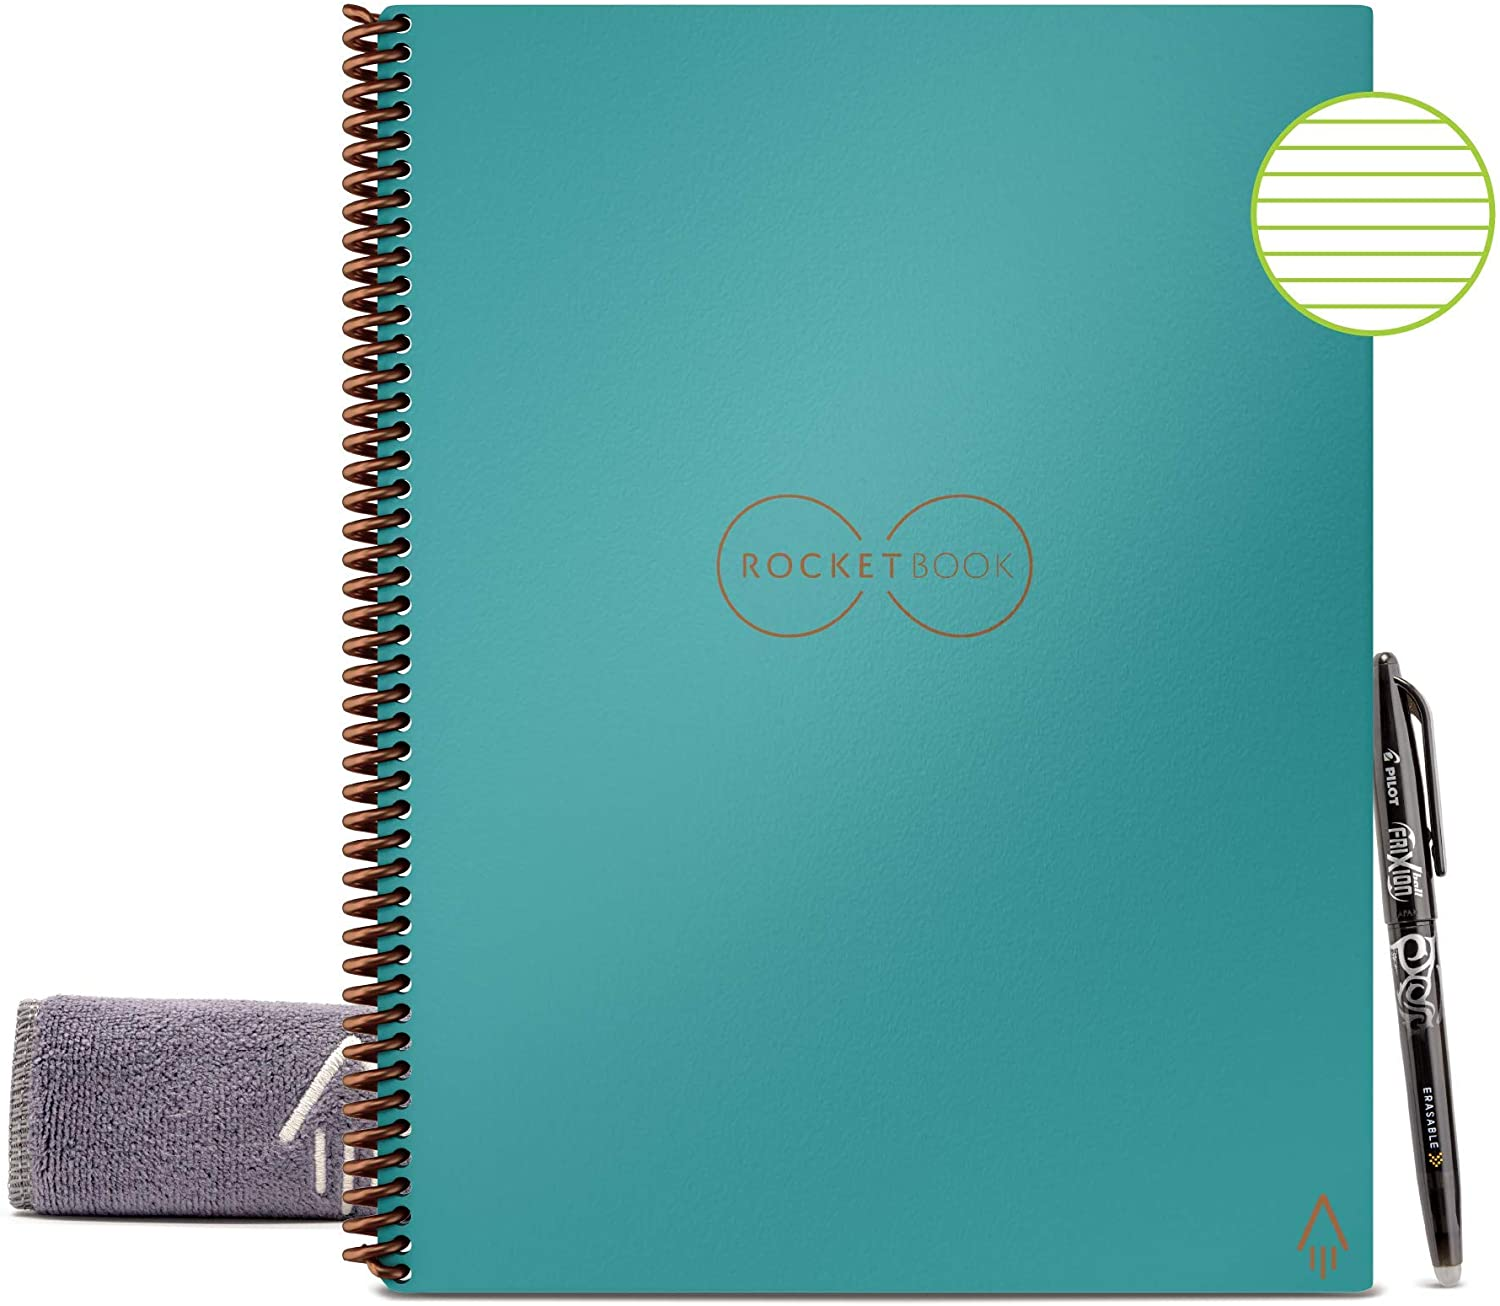 Smart Digital Notebook Brainstorming